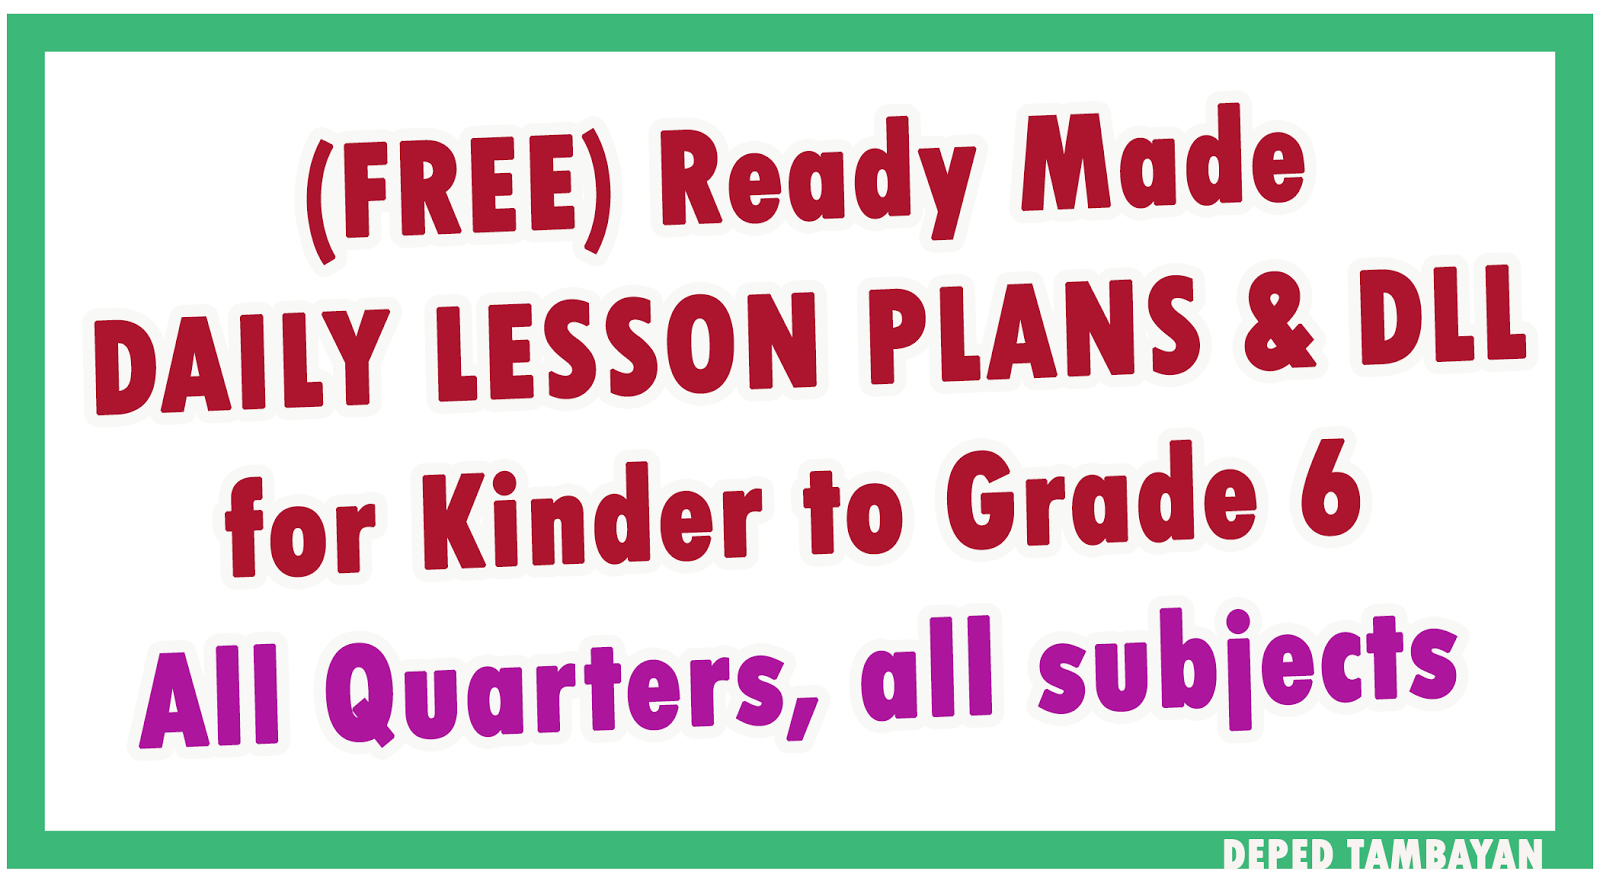 New complete ready made lesson plans for grade 2 all subject for new complete ready made lesson plans for grade 2 all subject for q1 q4 deped tambayan ph places to visit pinterest high school teacher and school kristyandbryce Choice Image